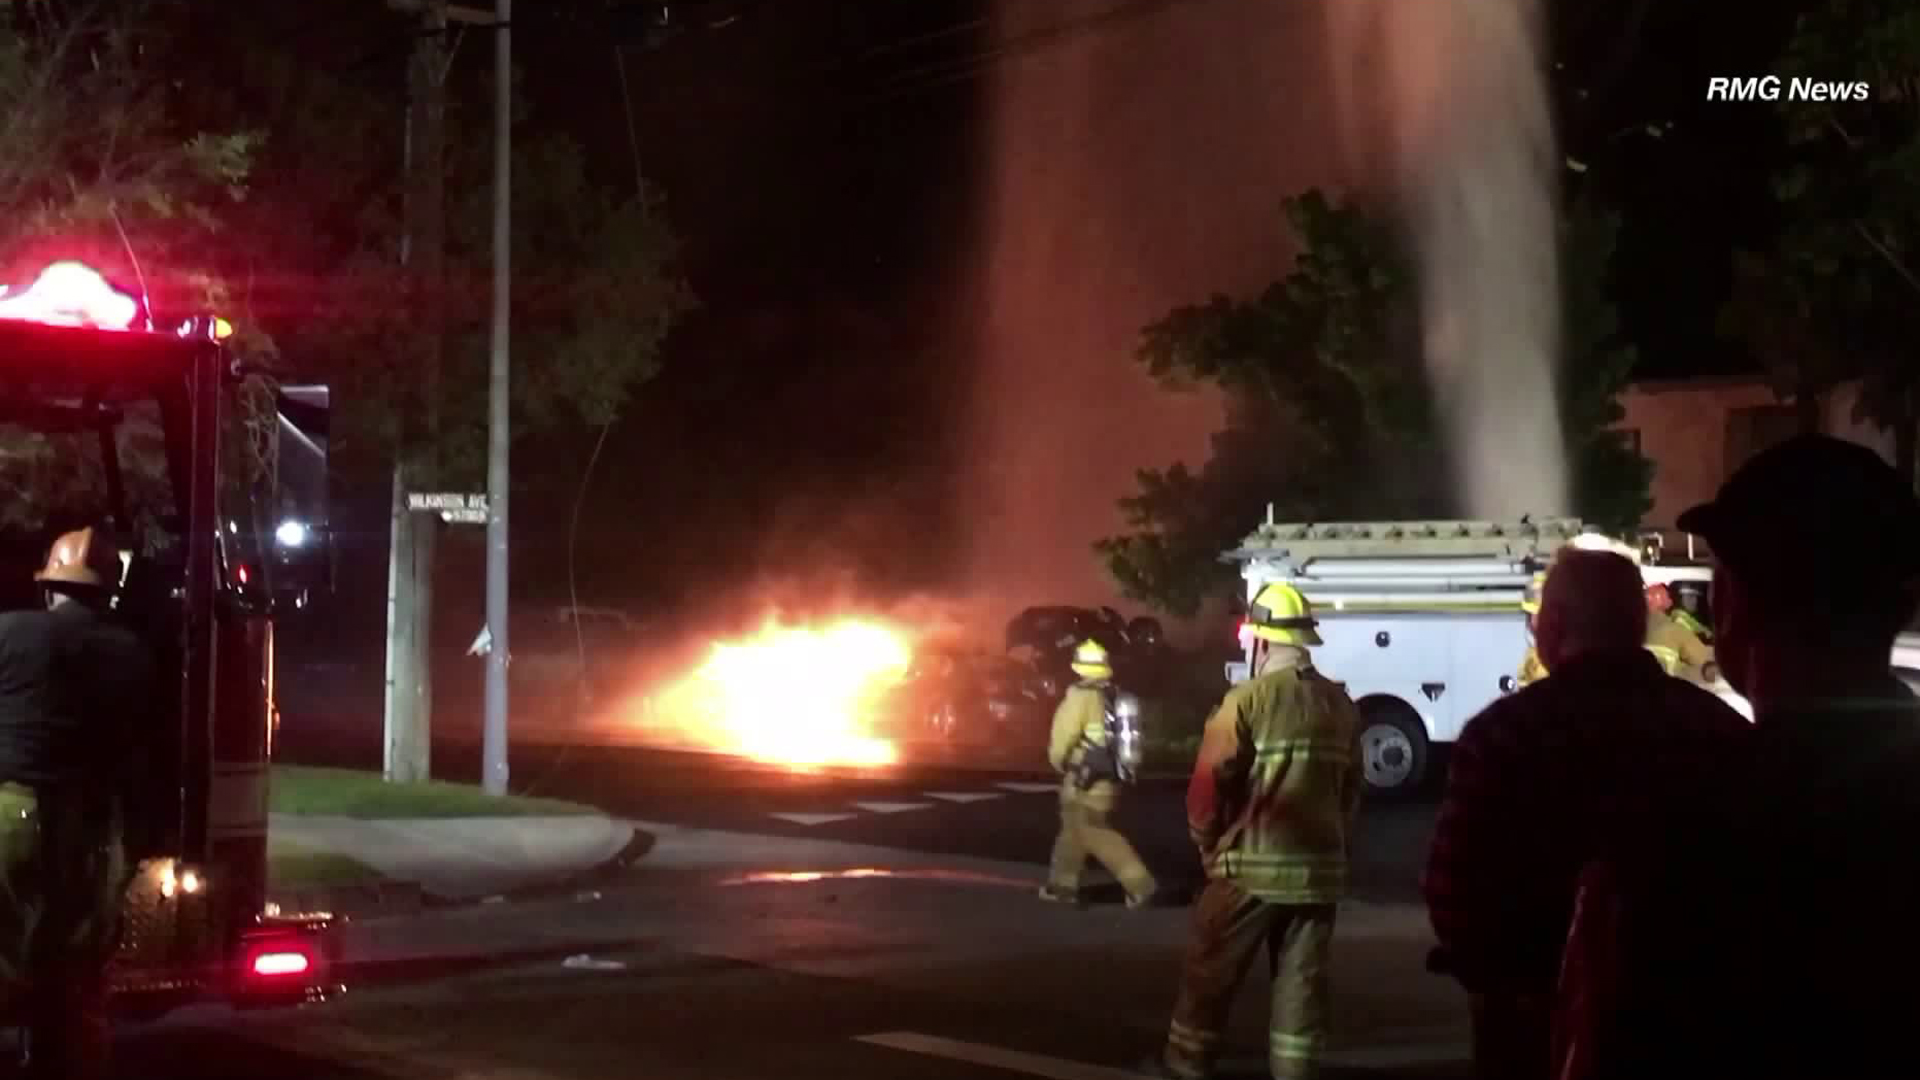 A car crashed into two other cars, a power pole and a fire hydrant in Valley Village on June 7, 2018. (Credit: RMG News)